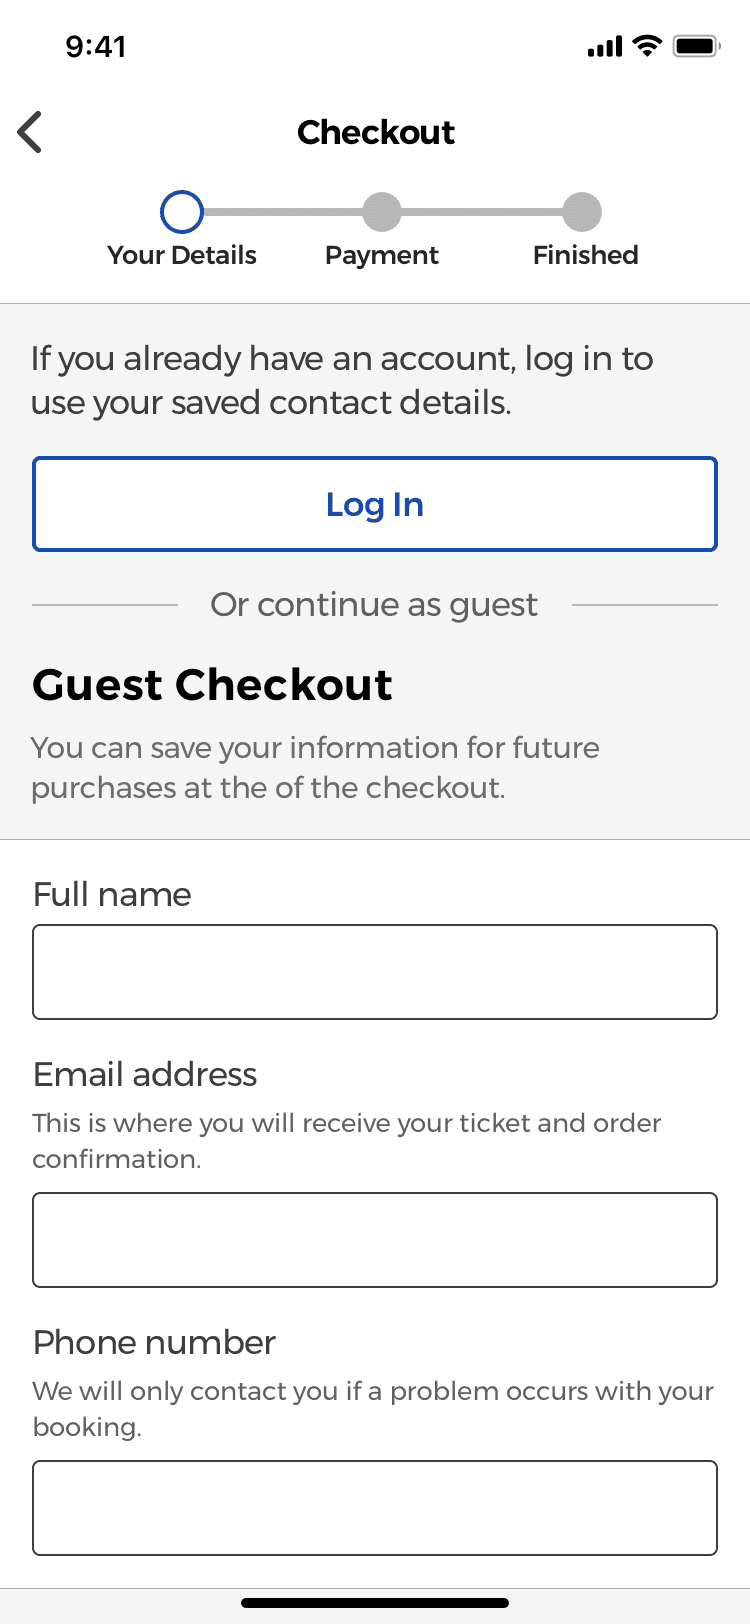 Users can sign in to use their saved personal information or as a guest, when booking a movie.